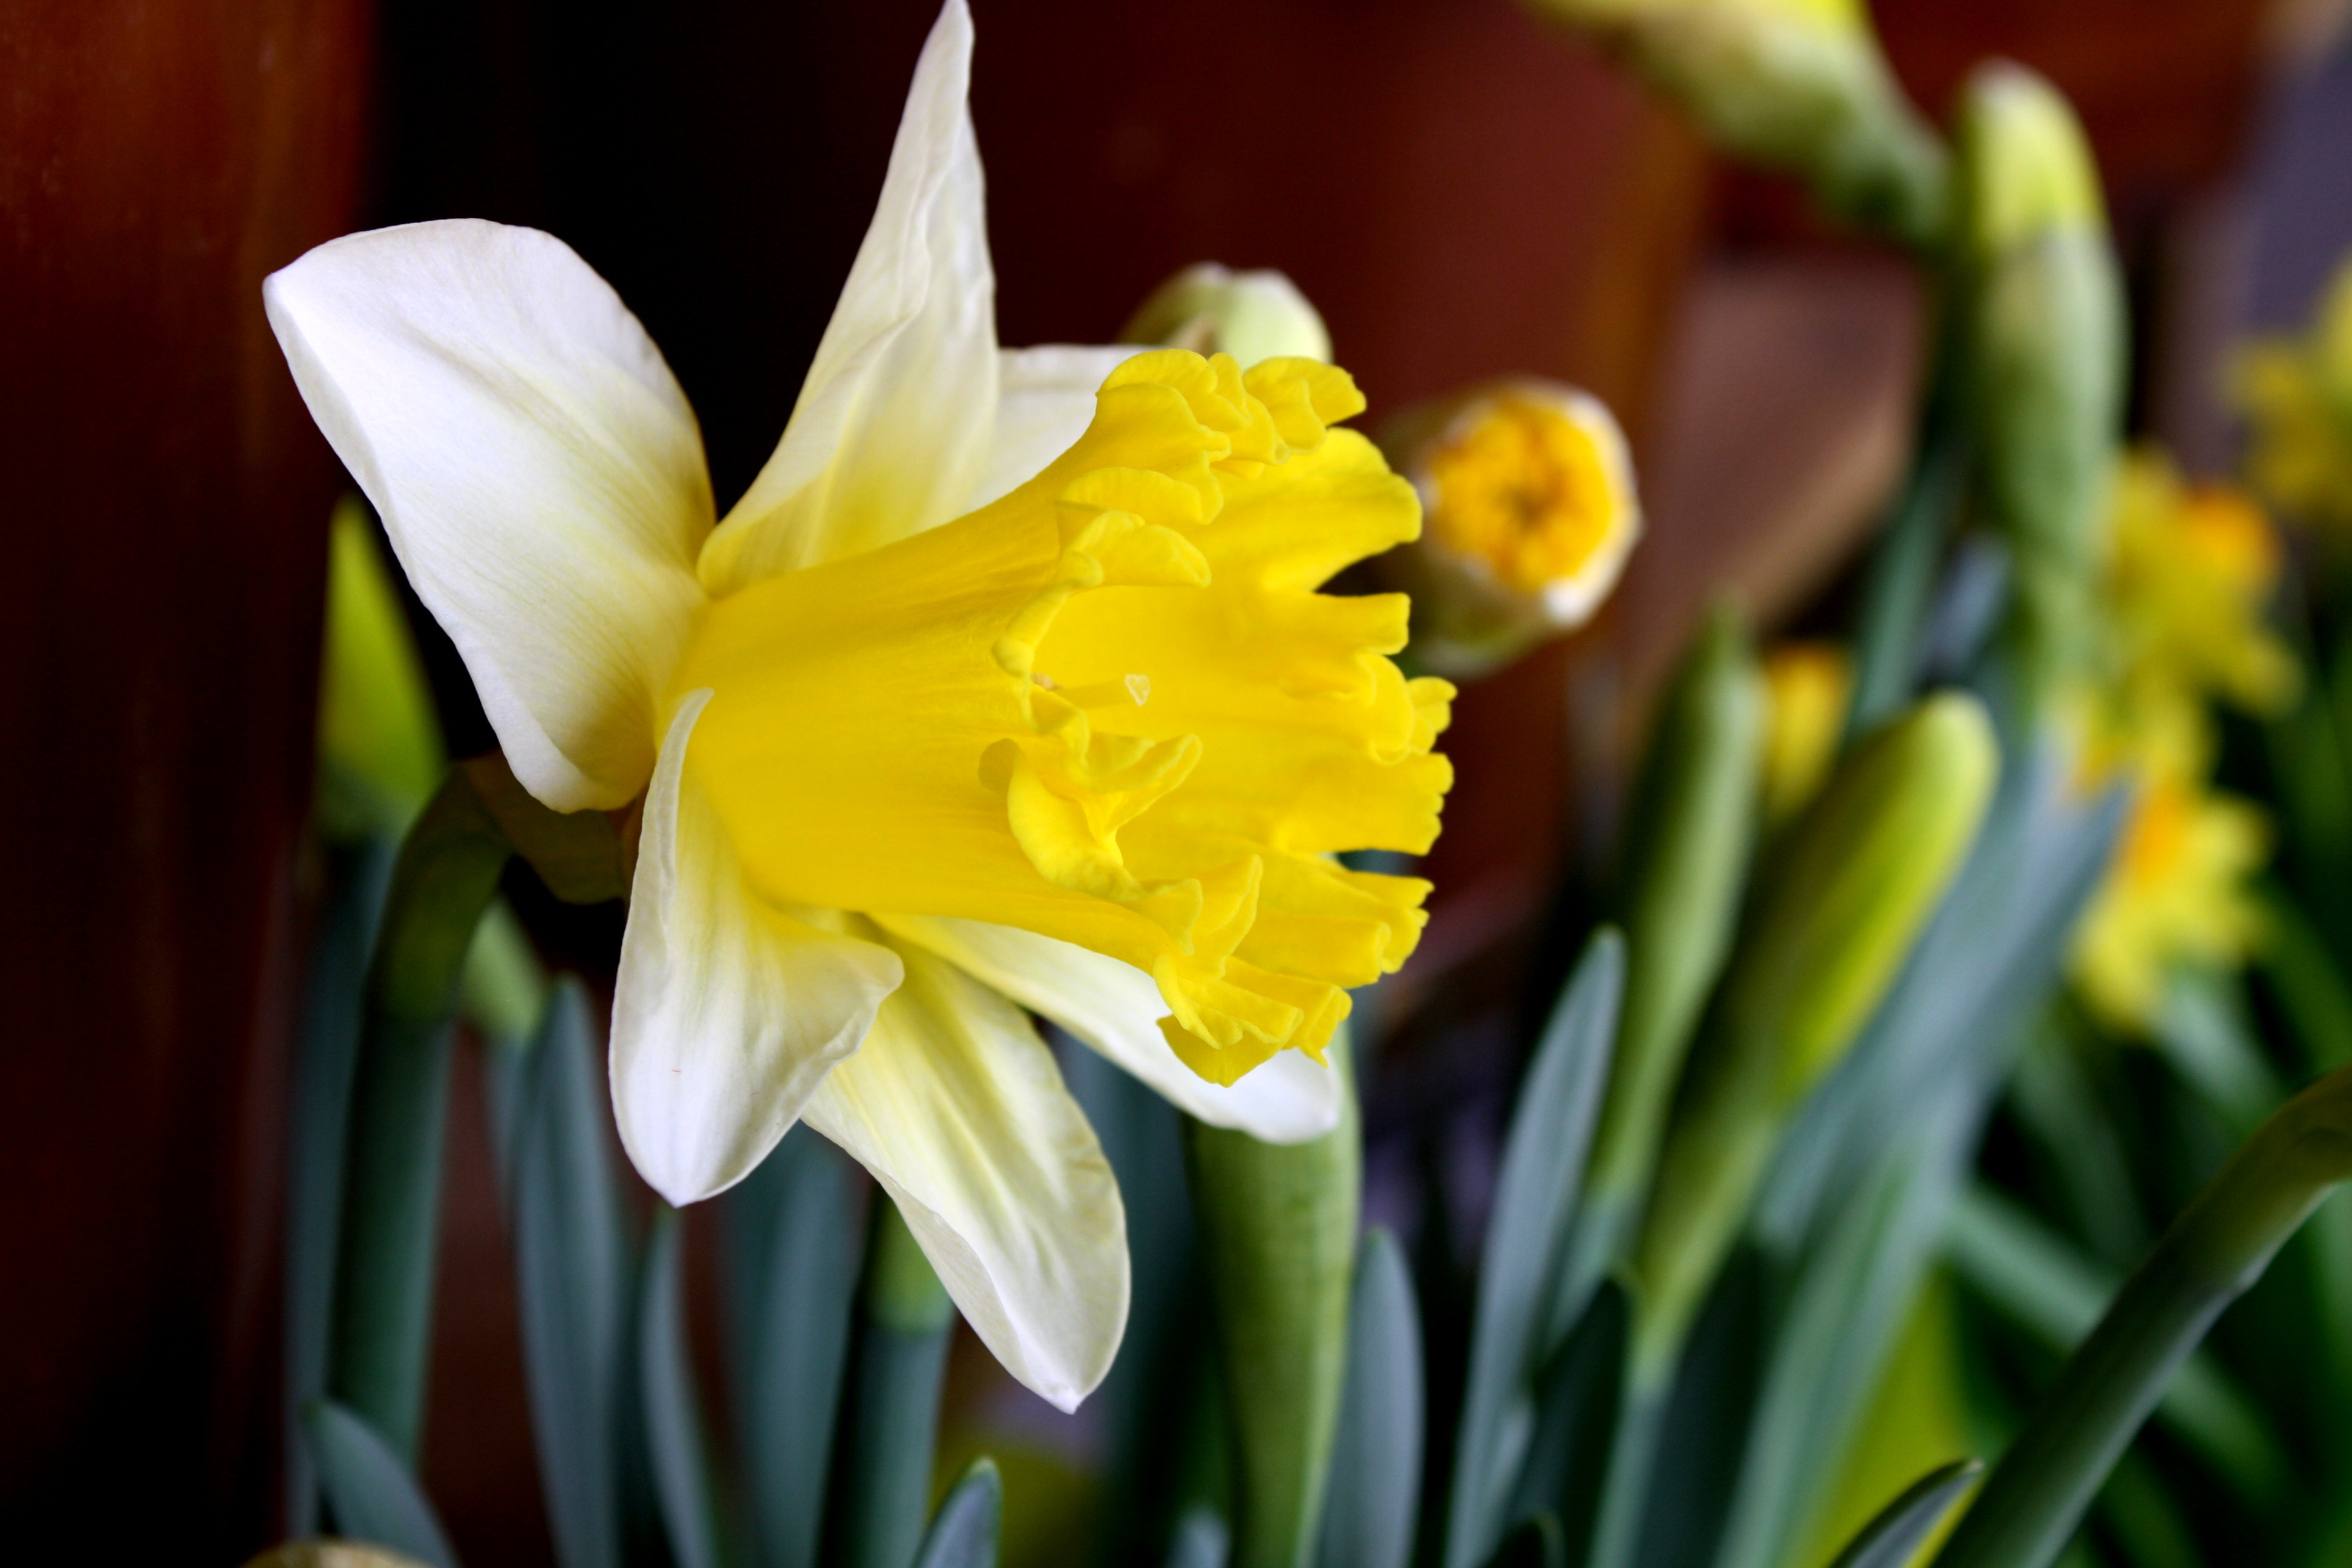 Yellow And White Daffodil Close Up Picture Free